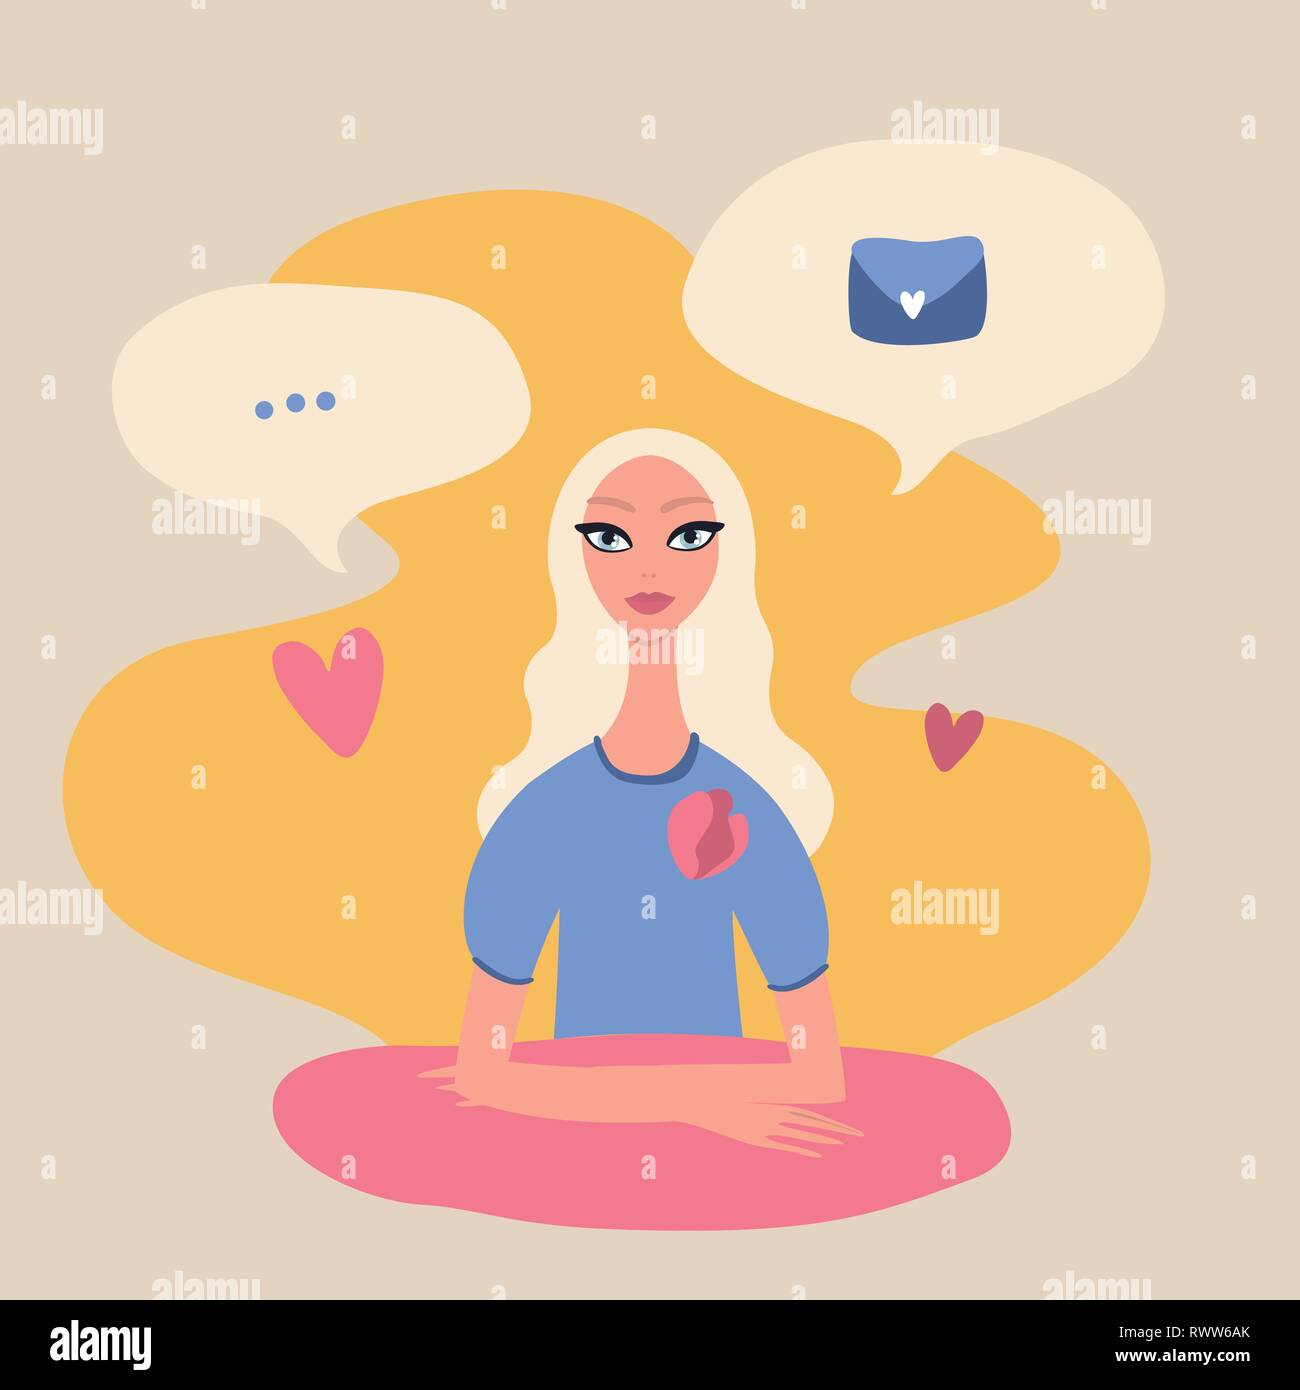 Young beautiful blond woman sitting at the table surrounded by speech bubbles - Stock Vector